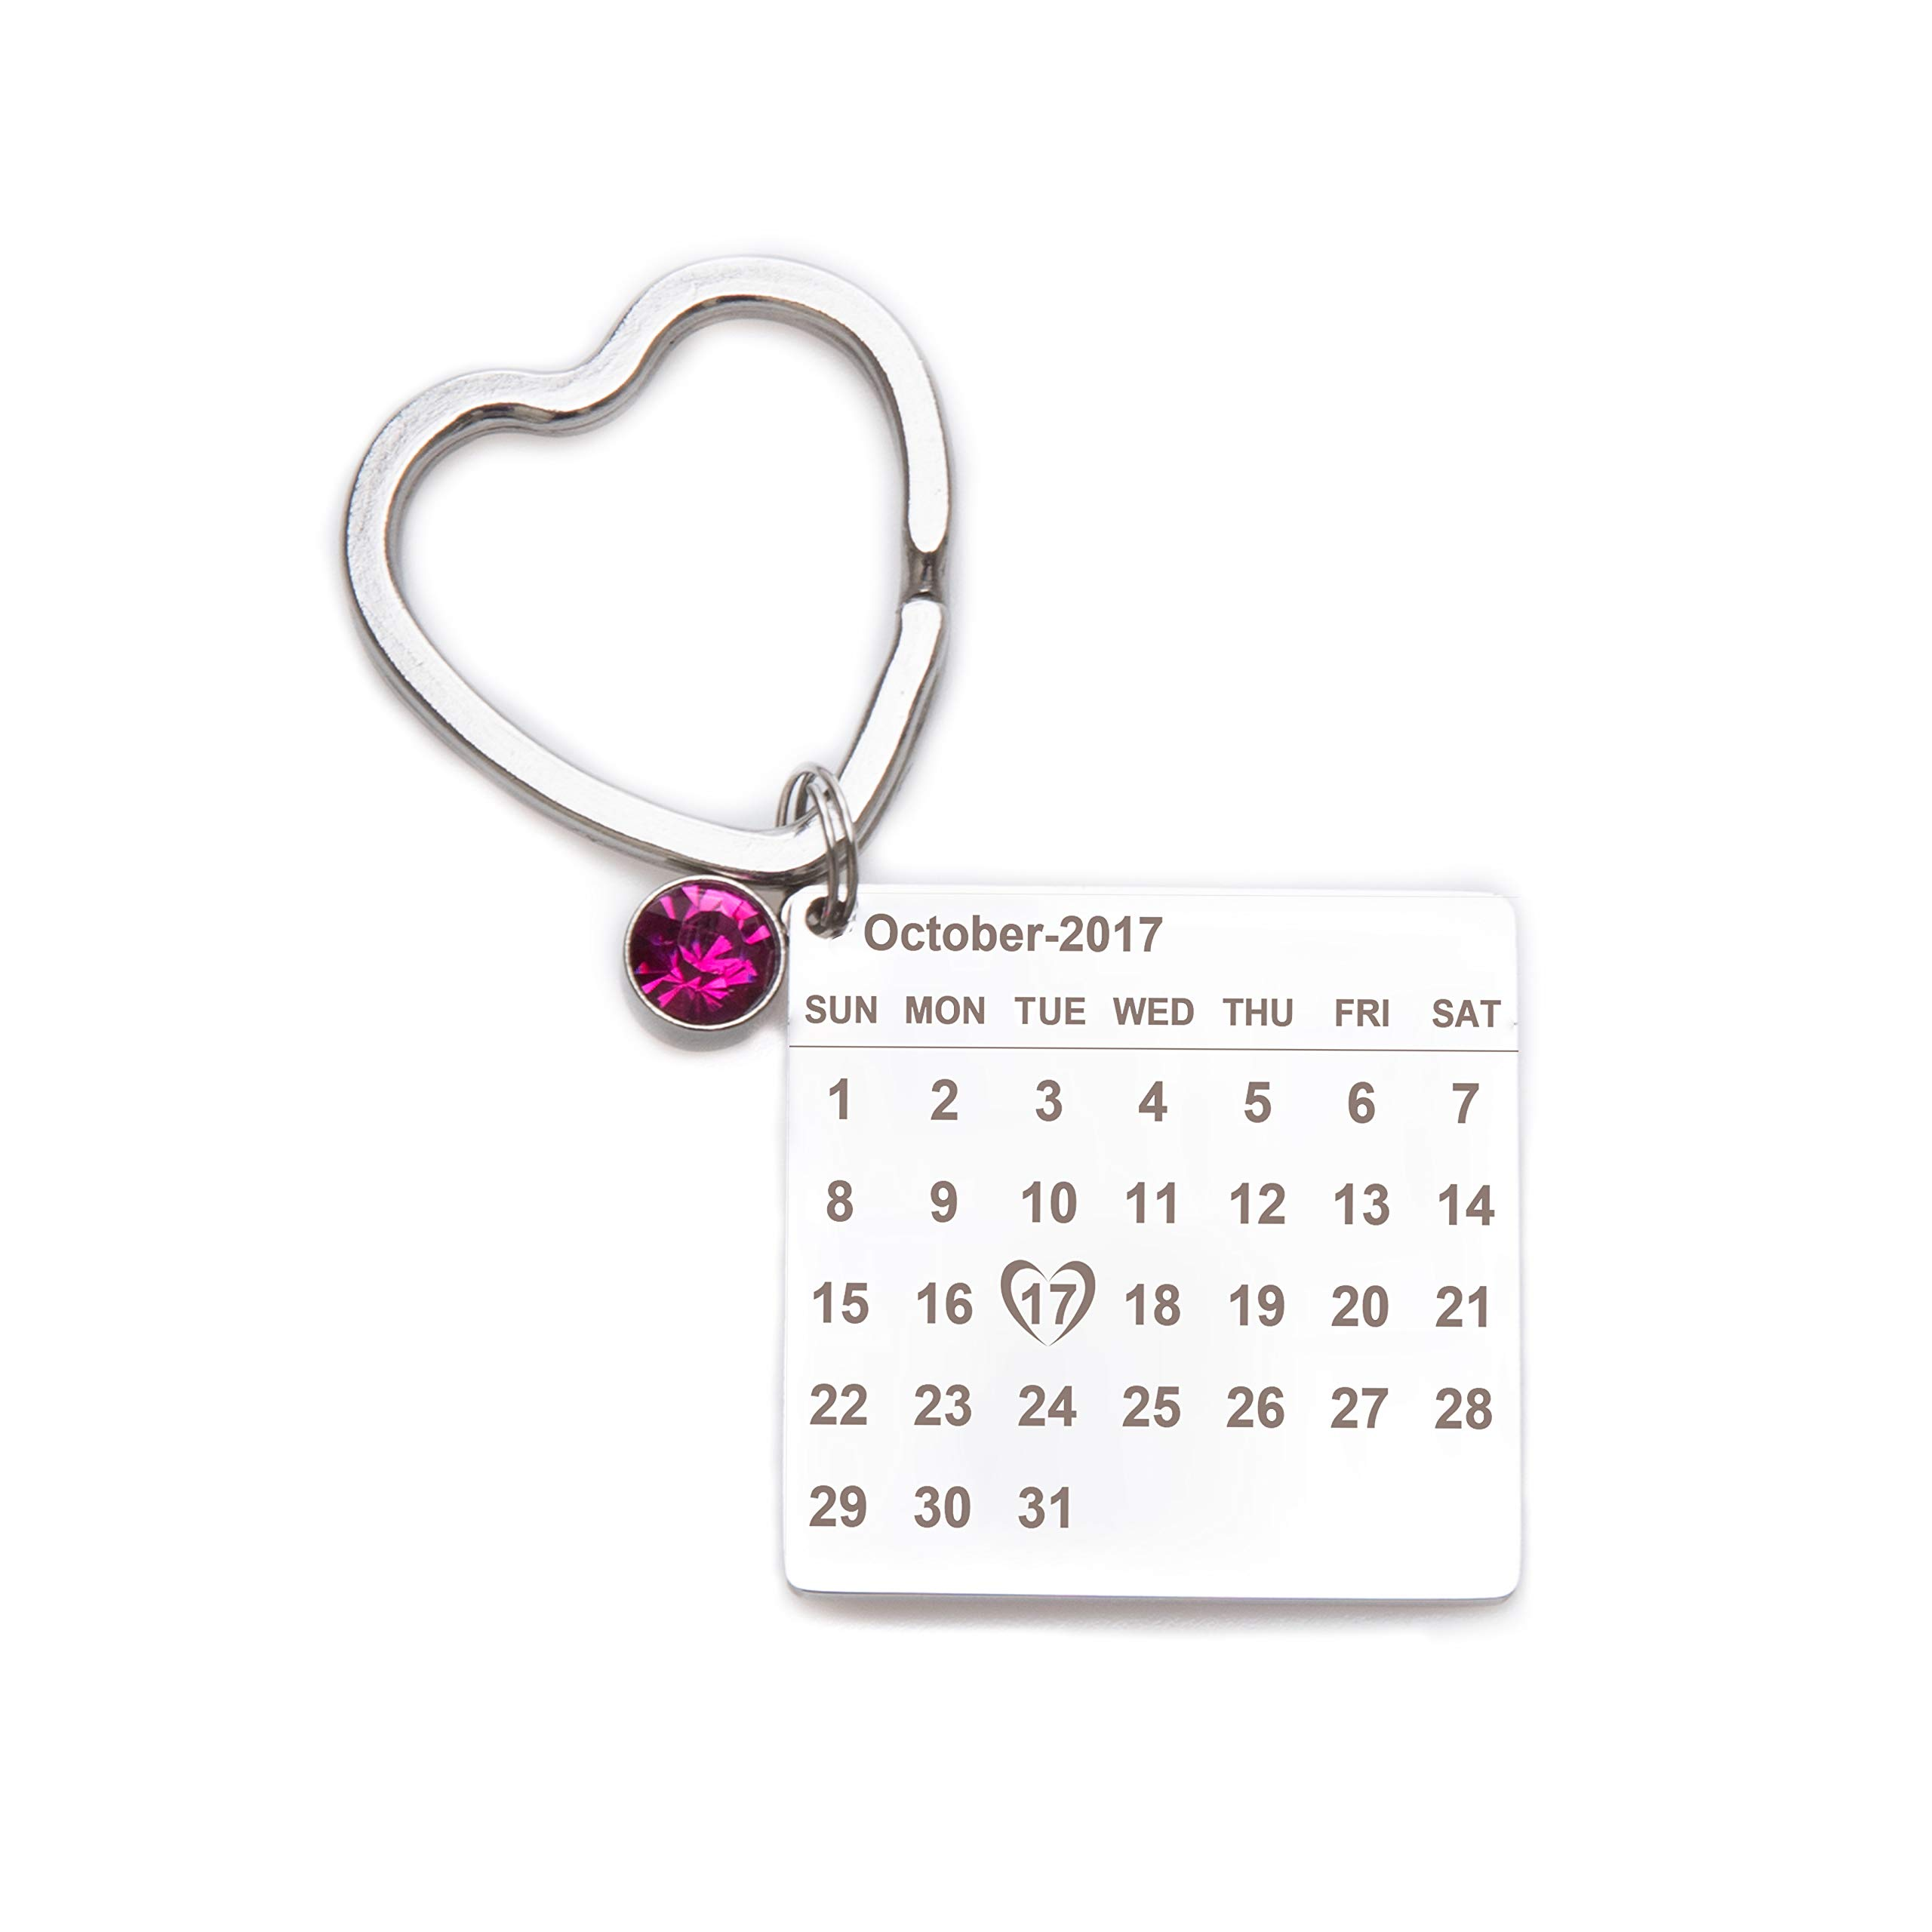 Fanery Sue Custom Calander Keychain Personalized Birthstone Special Day Anniversary Love Key Ring for Couples Best Friends Families(Oct.)